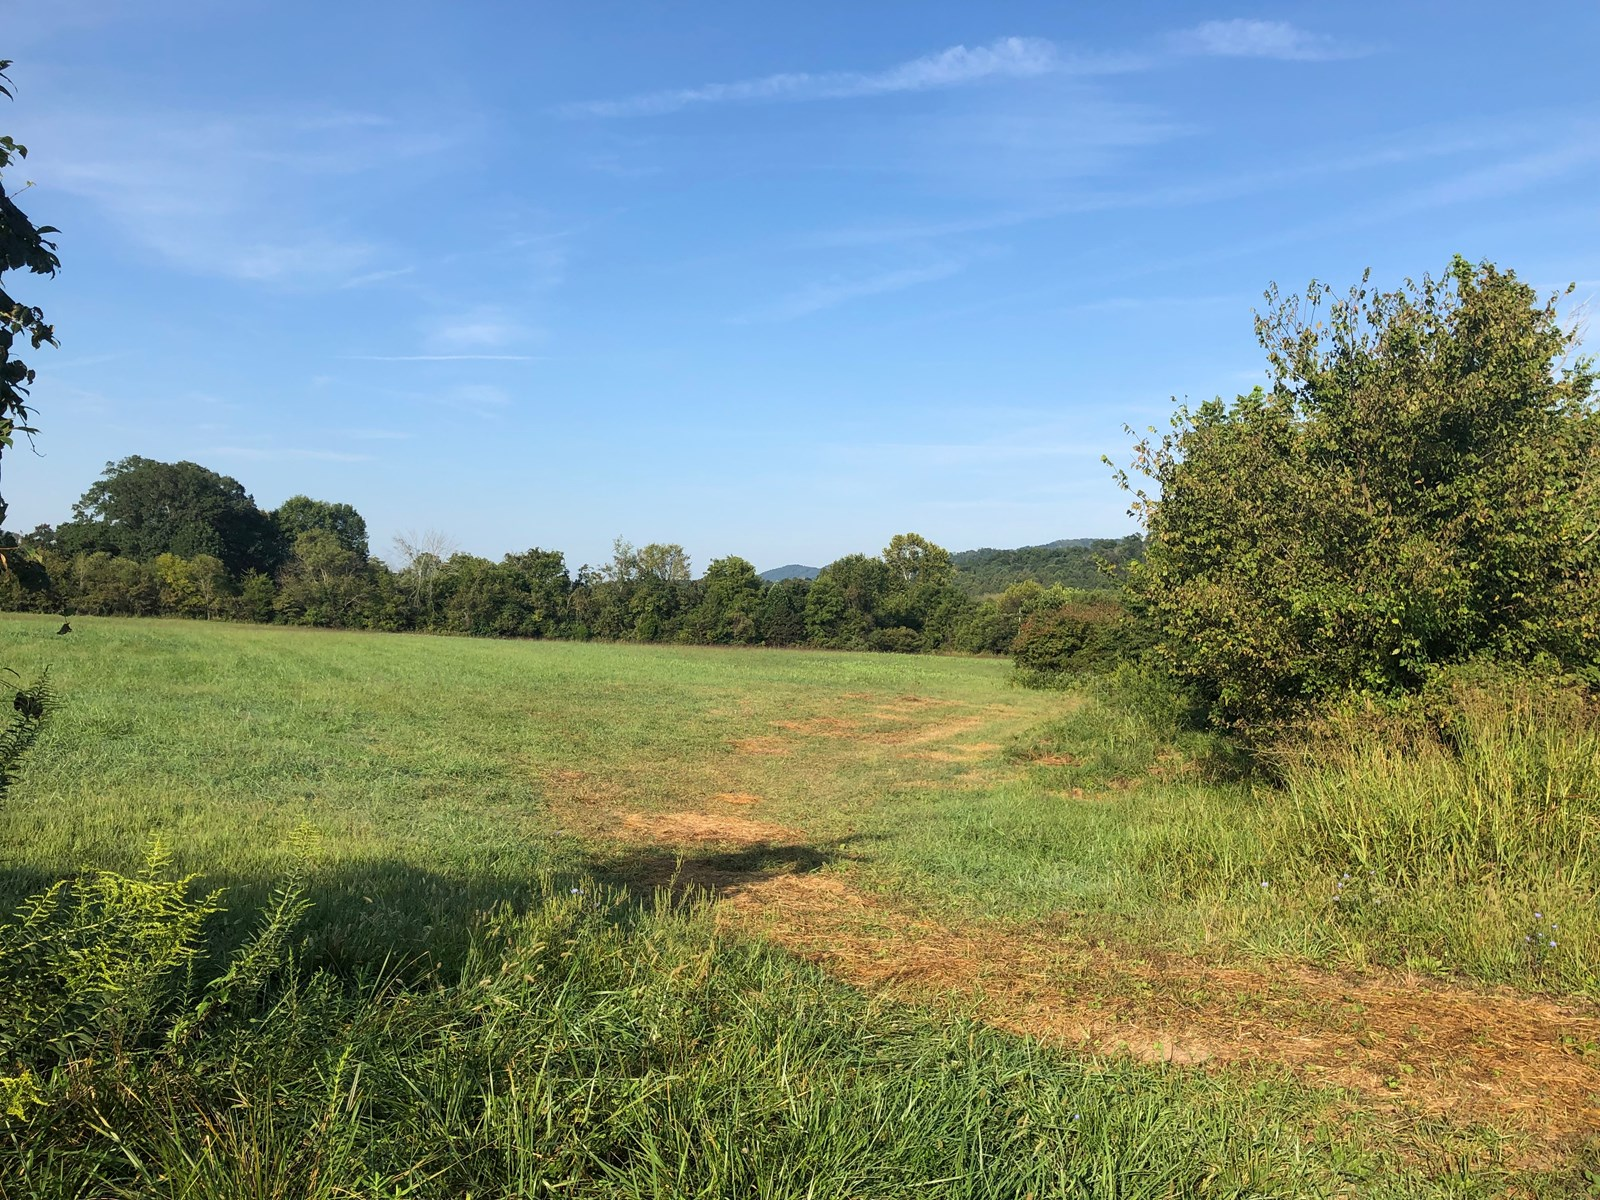 3.66 Acres Unrestricted Land in Whitesburg, TN For Sale